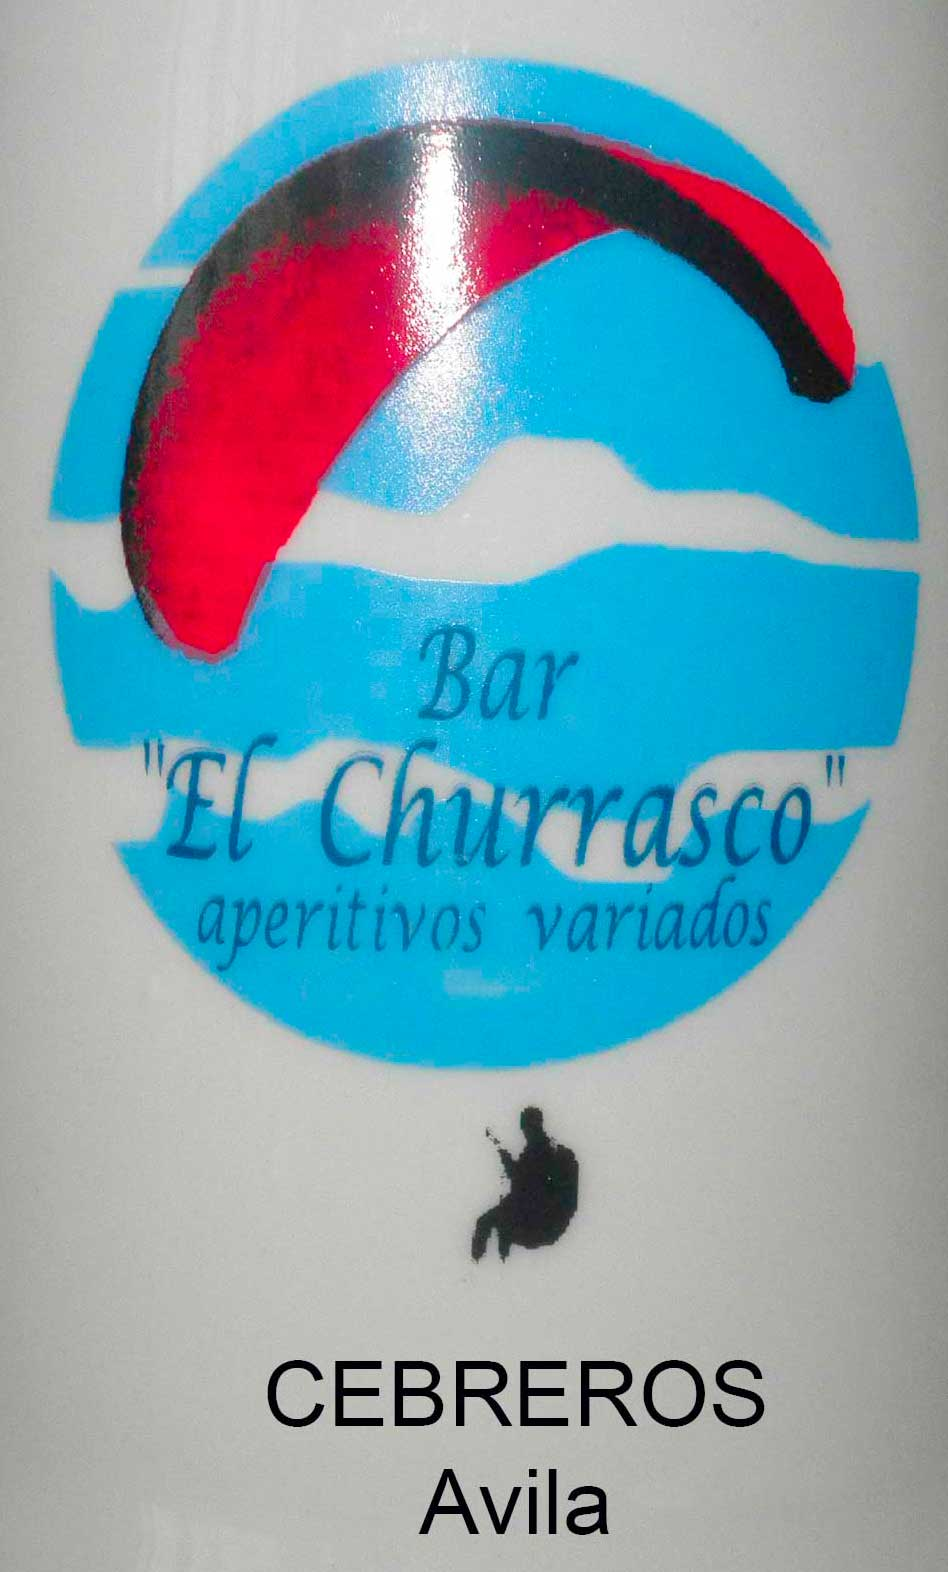 Bar El Churrasco en Cebreros (Avila)